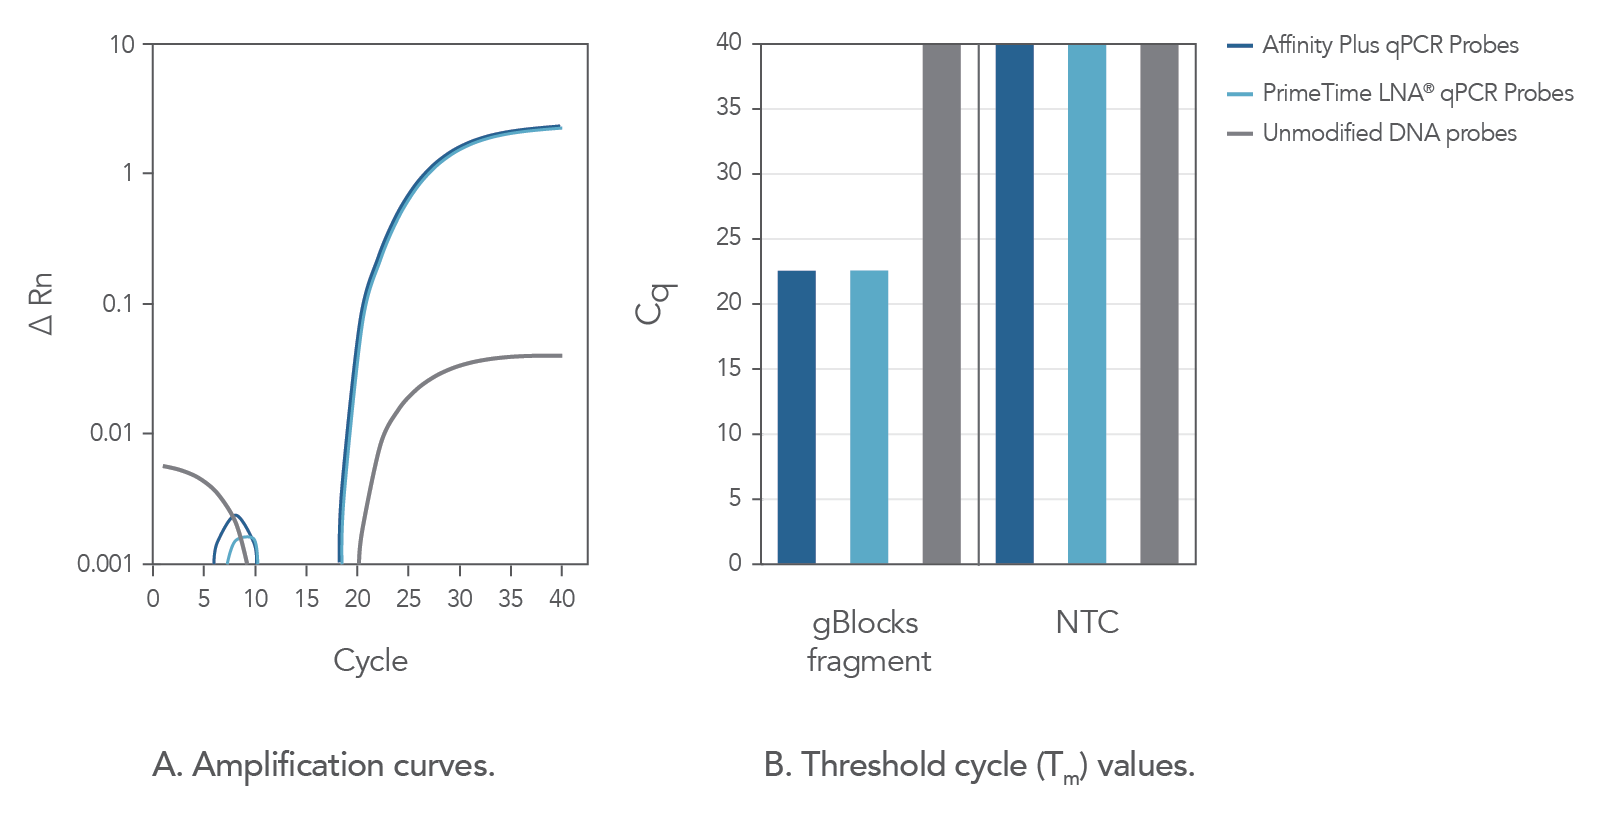 Identical amplification data from Affinity Plus and PrimeTime LNA qPCR Probes